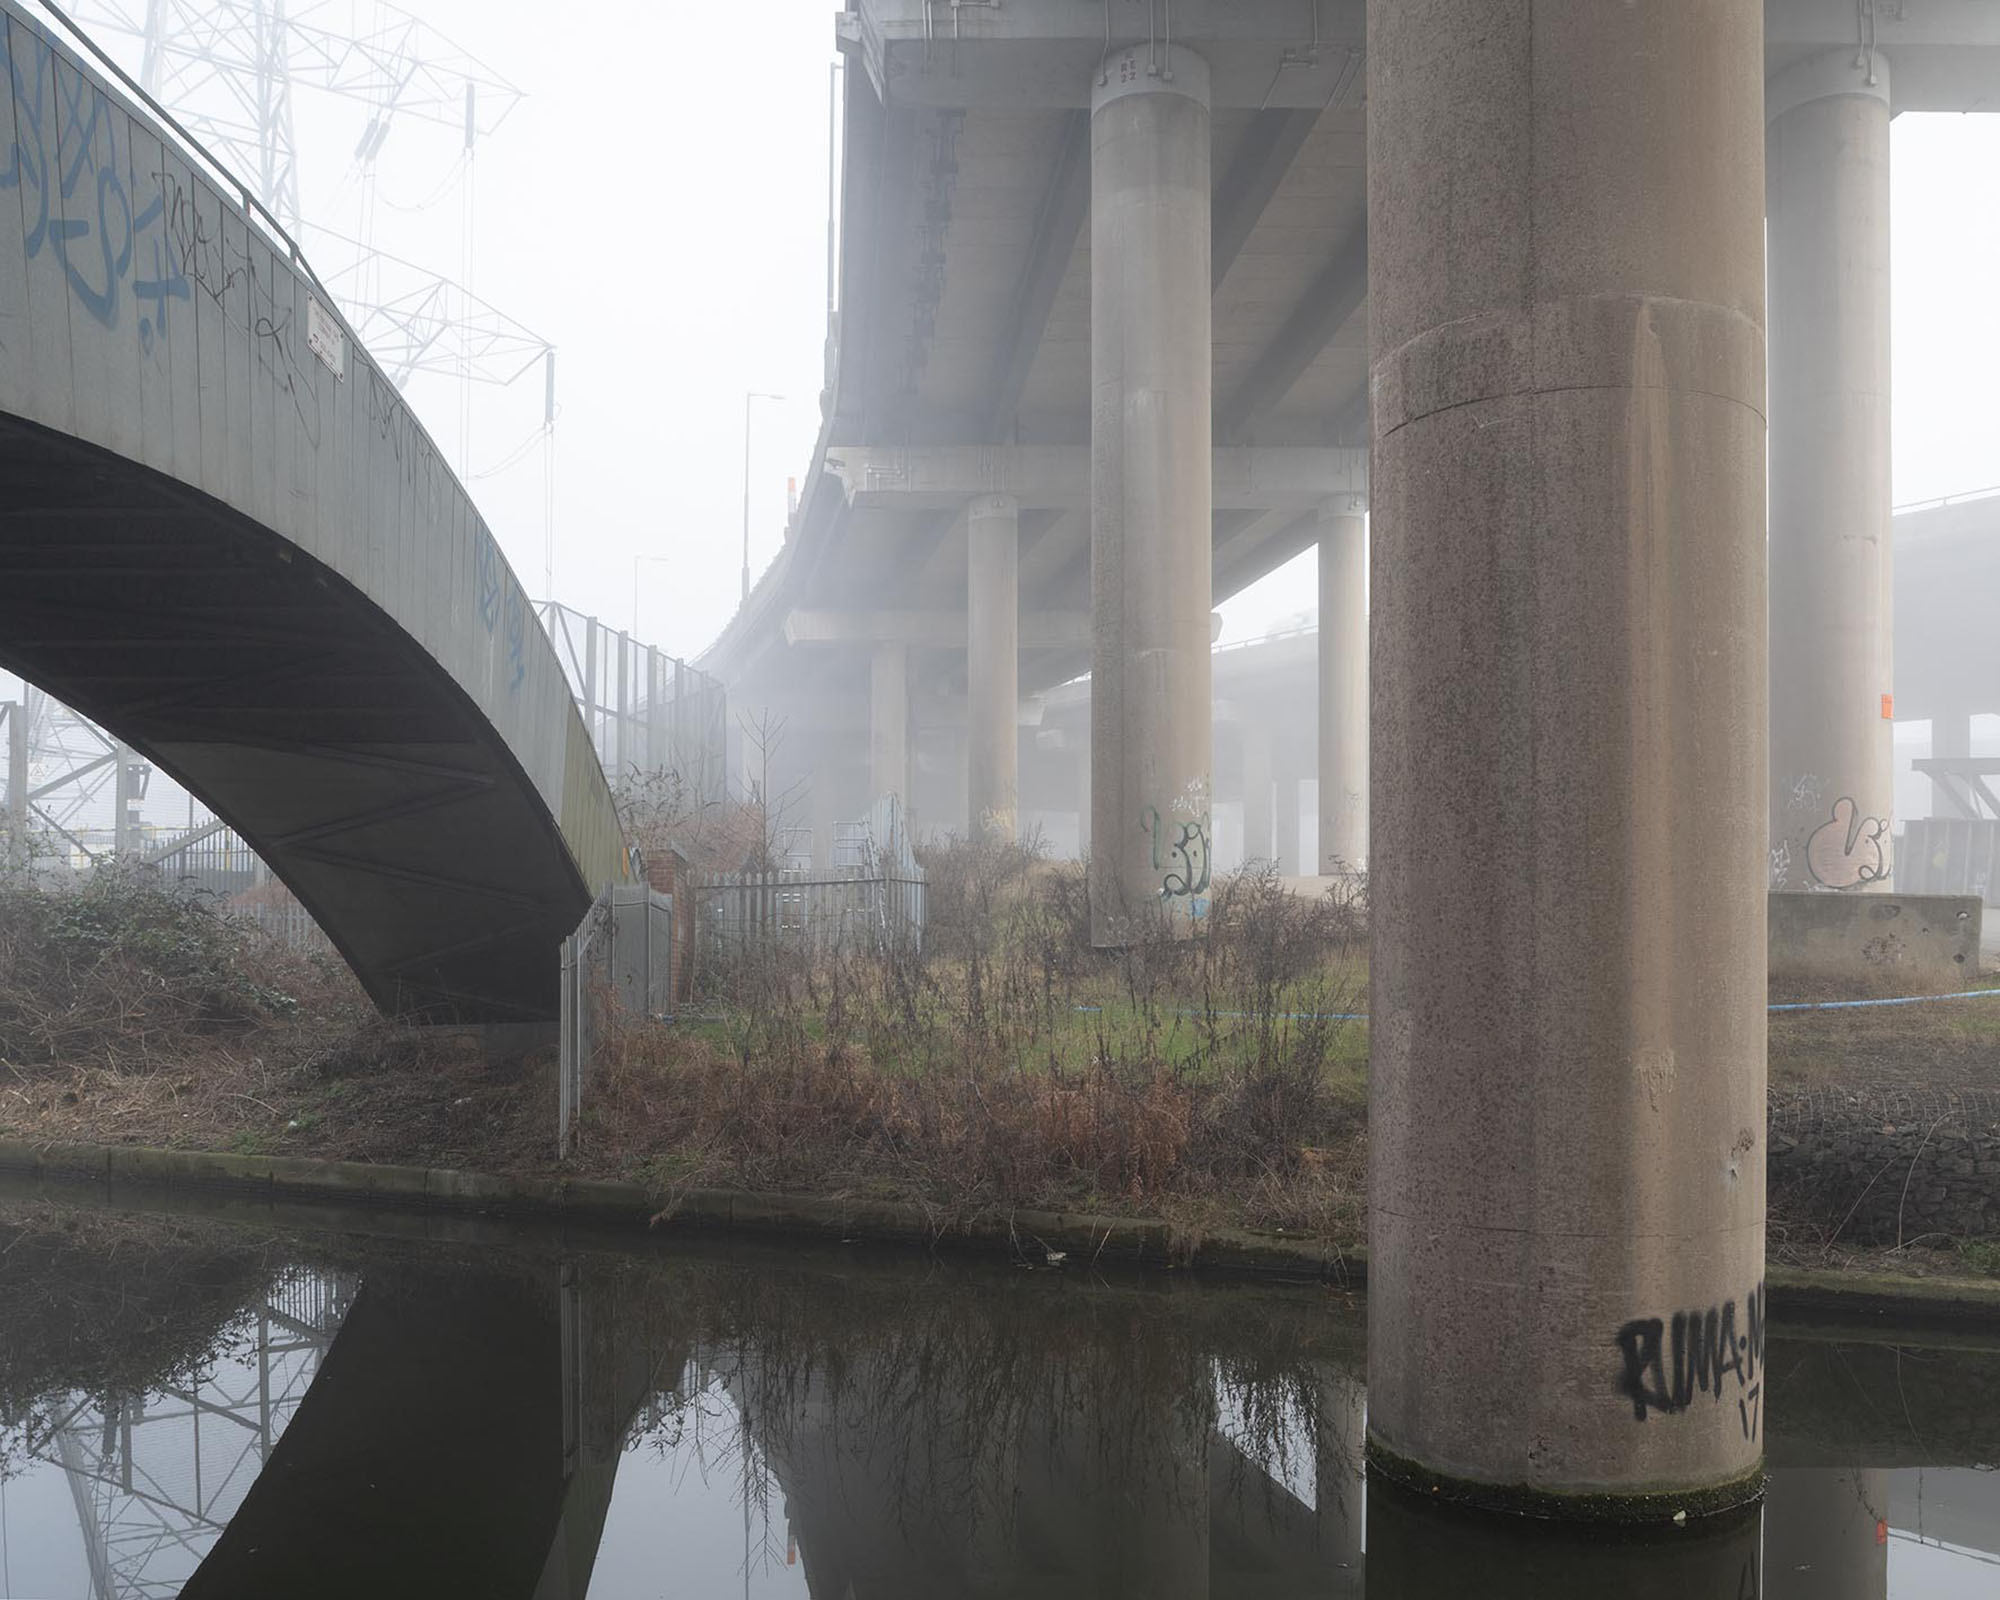 20190224_spaghetti junction_064.jpg